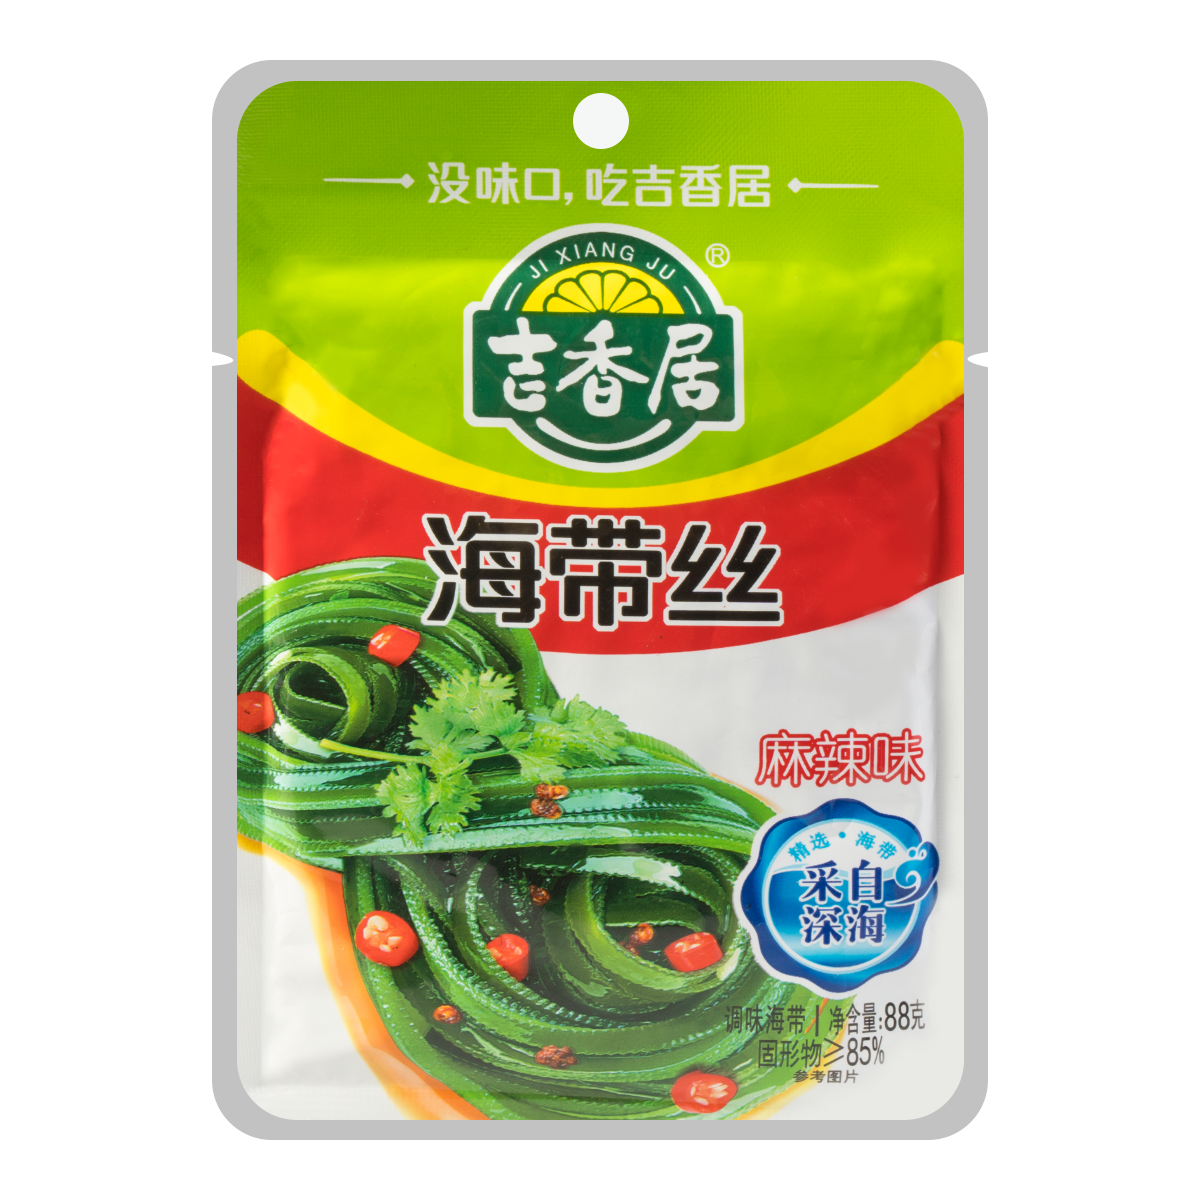 Yamibuy.com:Customer reviews:JIXIANGJU Sheredded Kelp in Spicy 88g